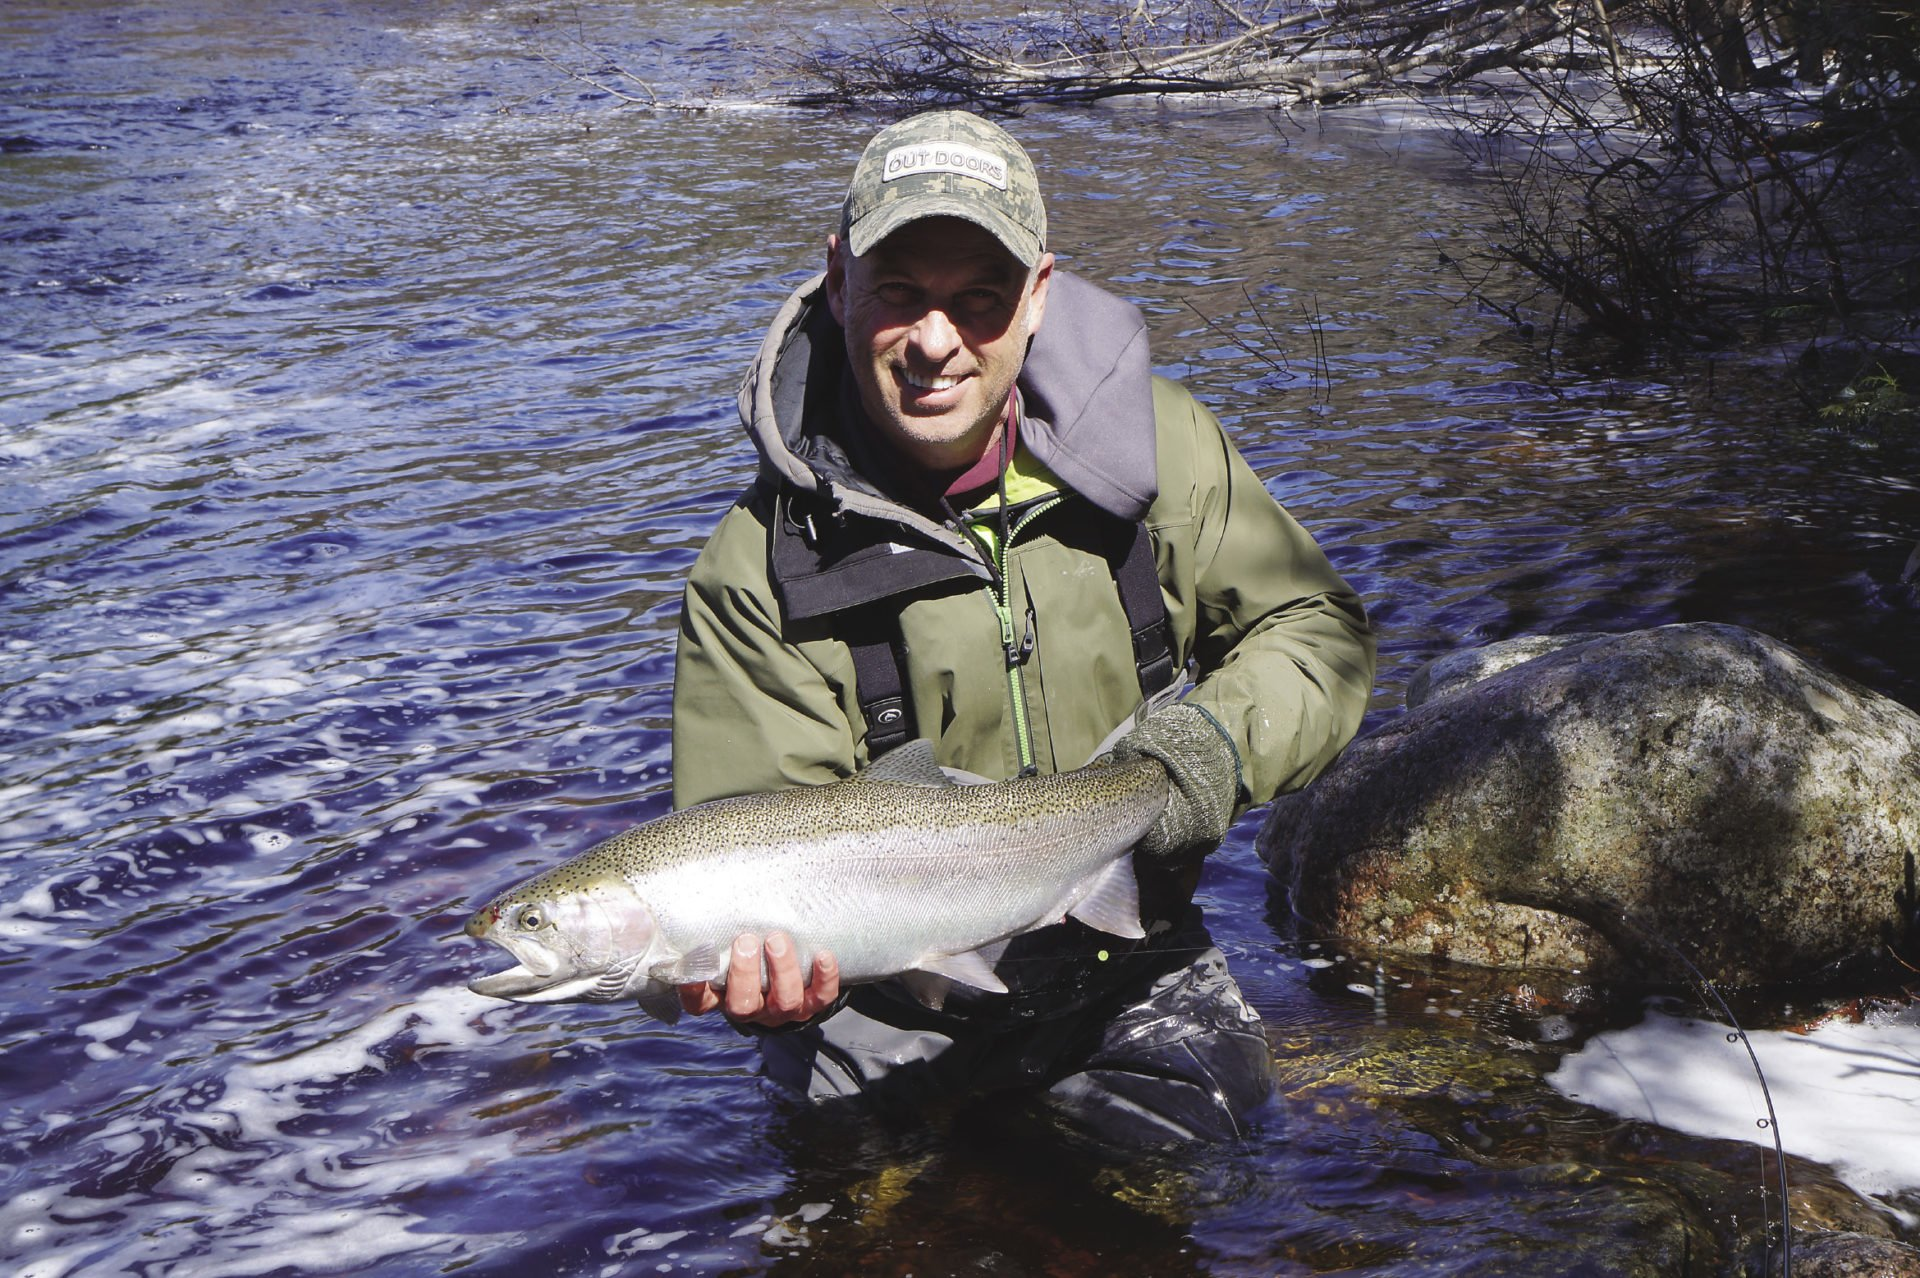 Gord with a steelhead he caught last April.